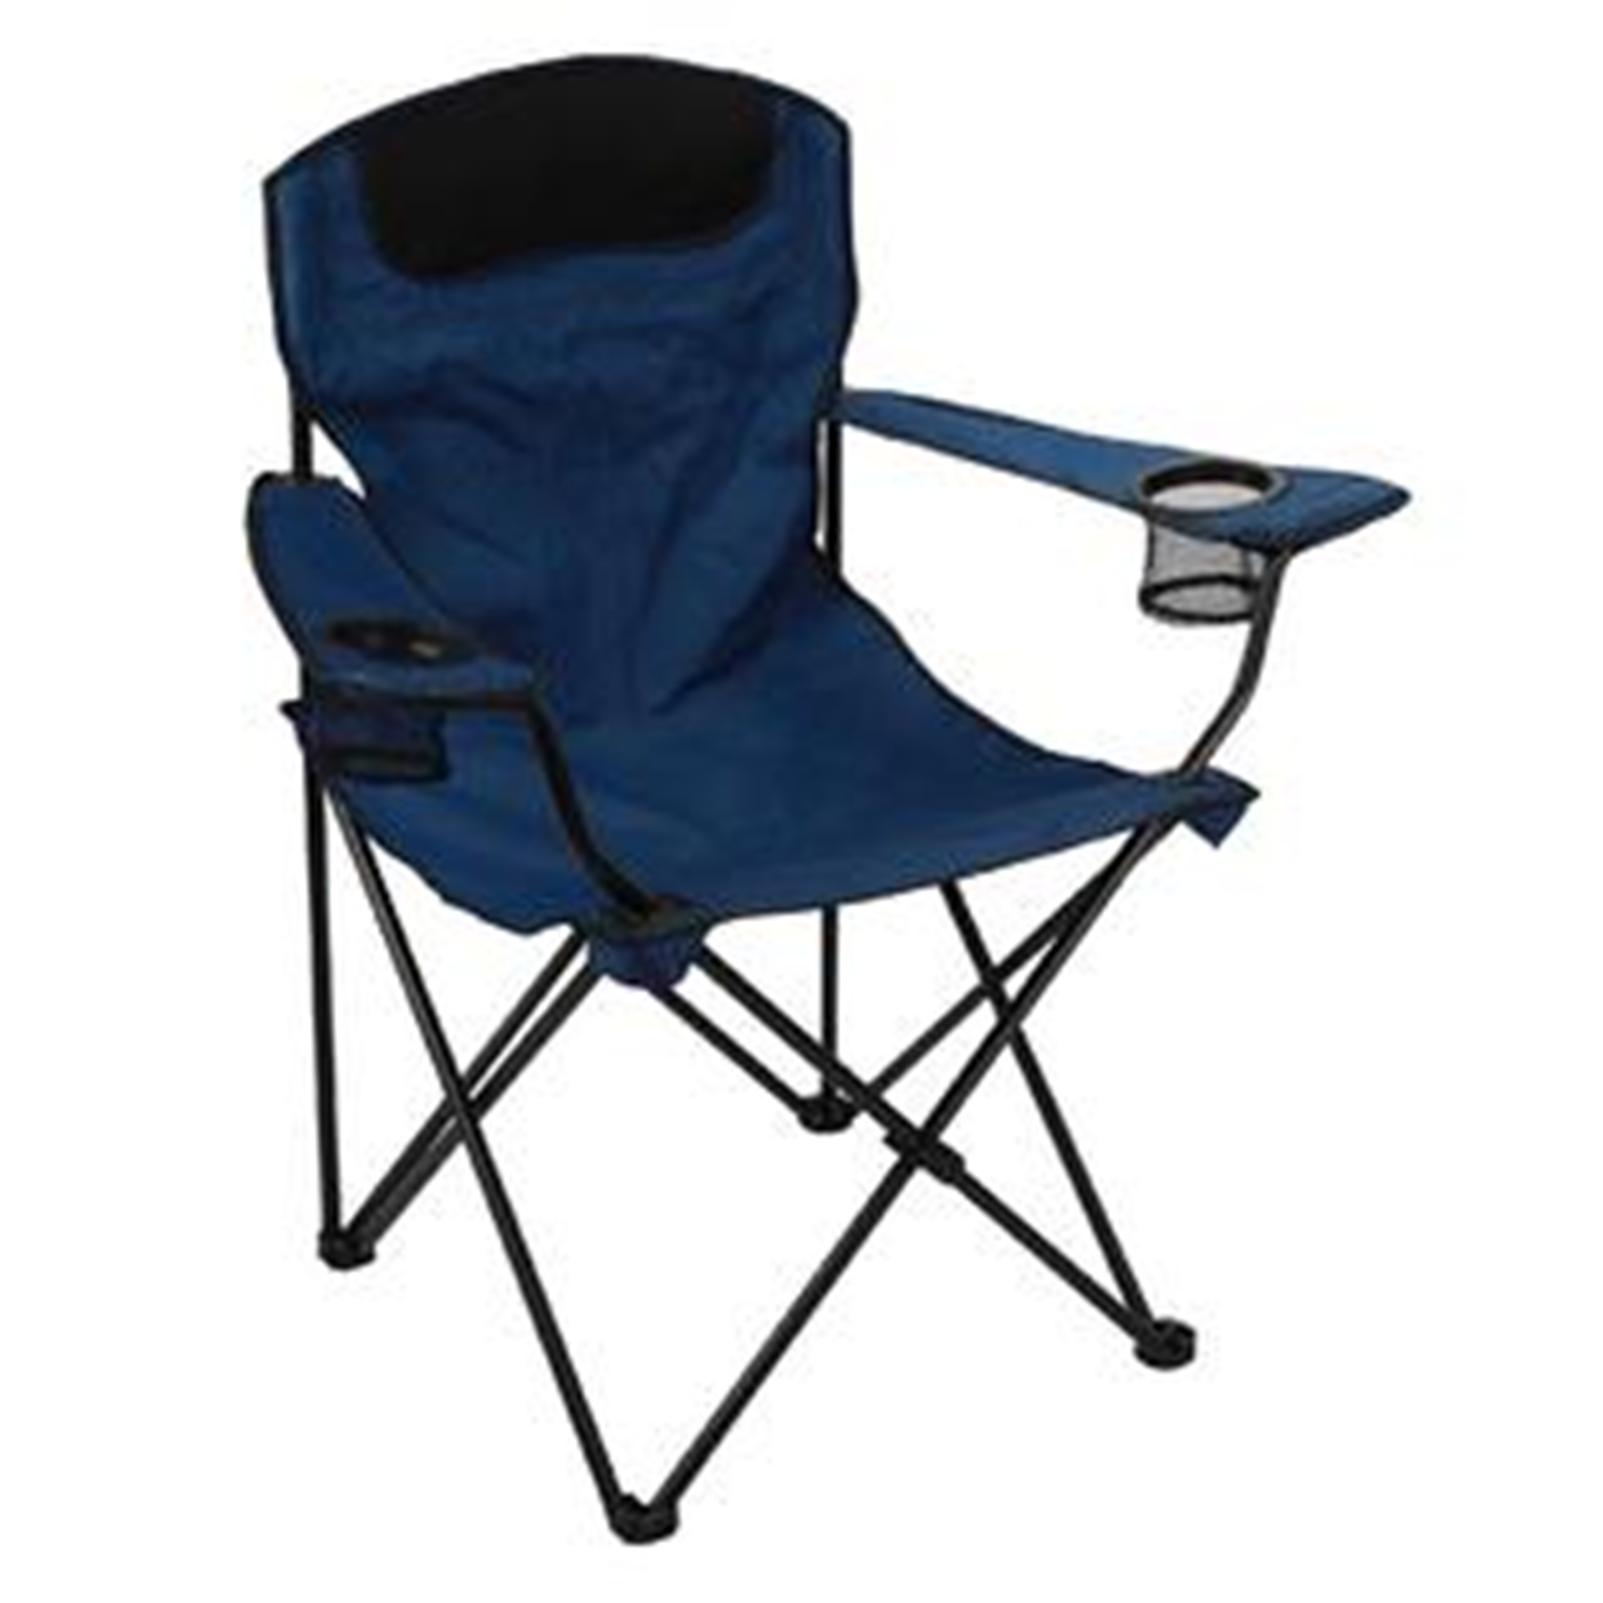 northwest territory chairs leather sling upc 818655007424 padded headrest chair blue product image for hkd international hk